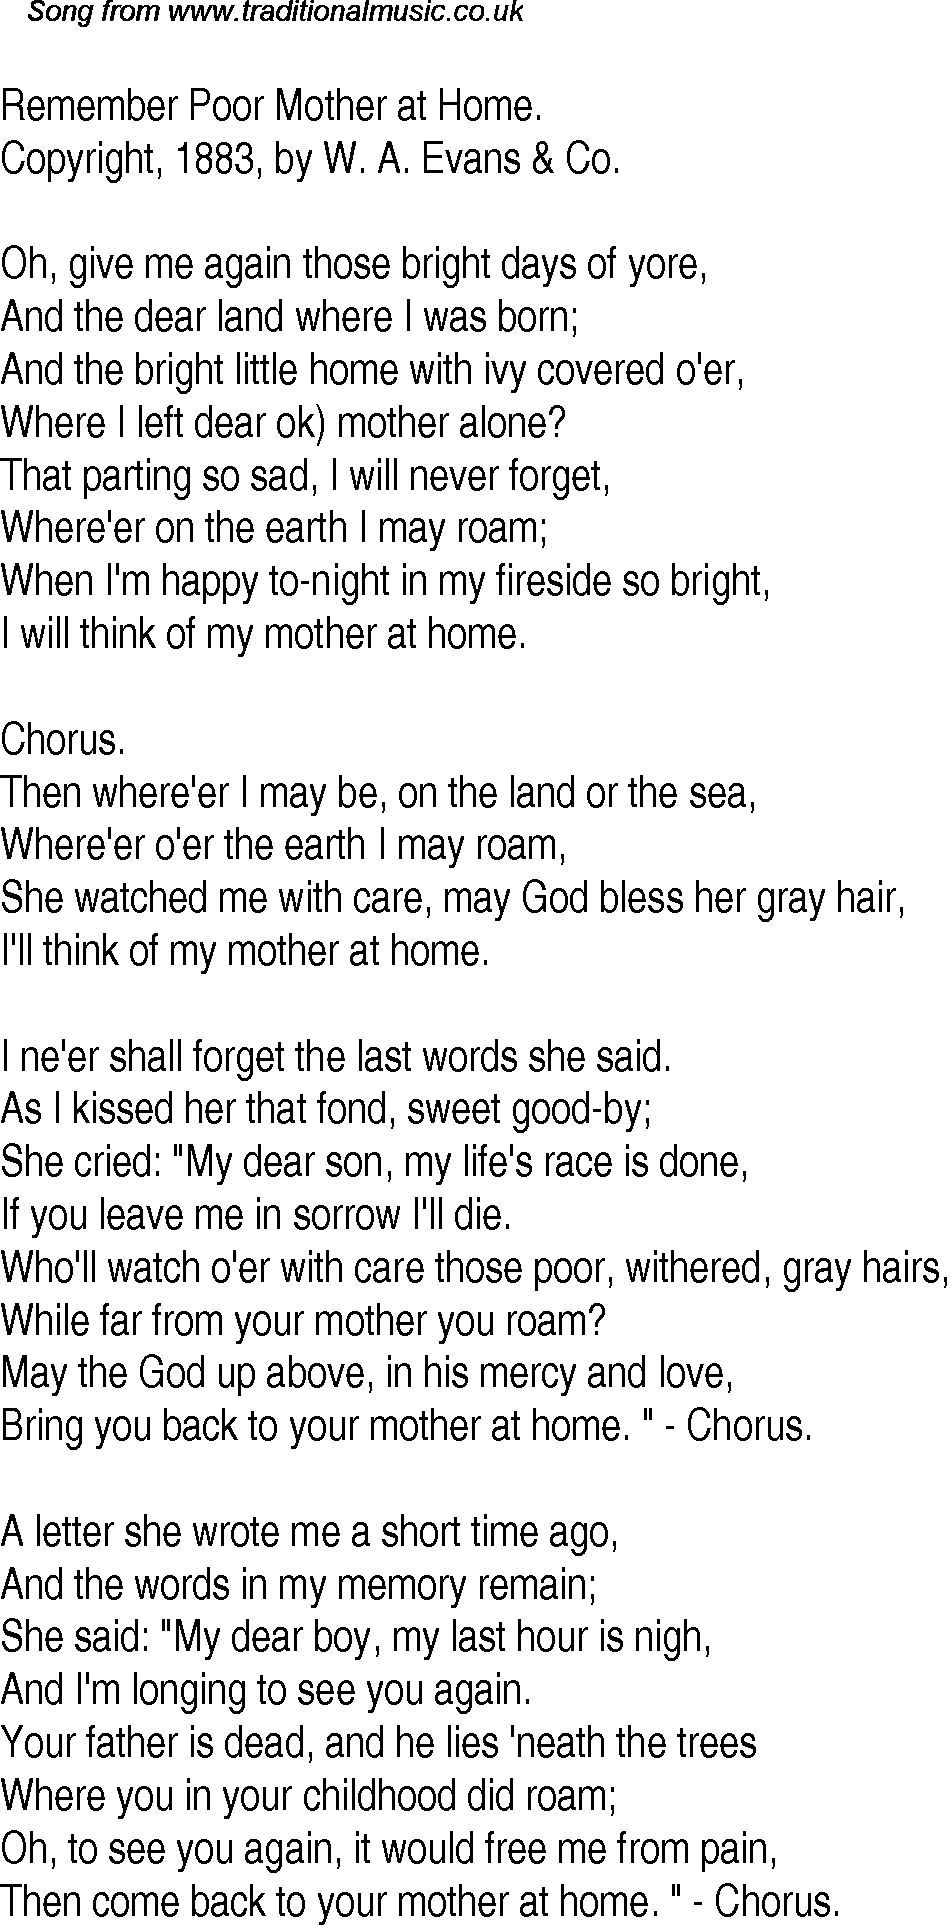 Old time song lyrics for 11 remember poor mother at home download music lyrics as png graphic file publicscrutiny